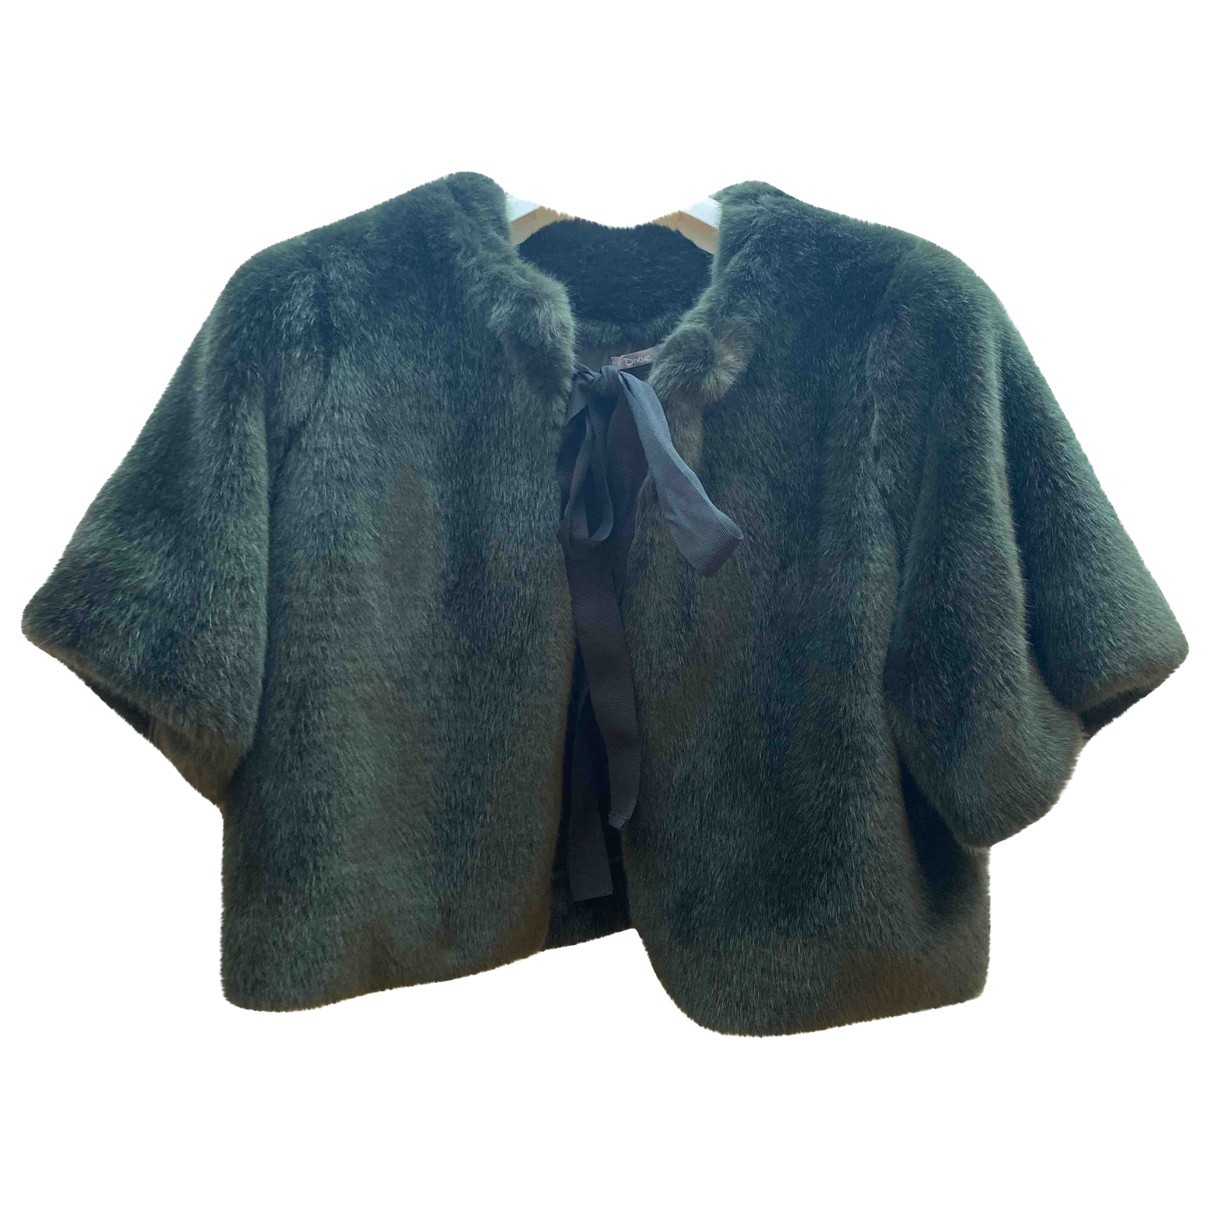 Dixie N Green Faux fur coat for Women 10 UK